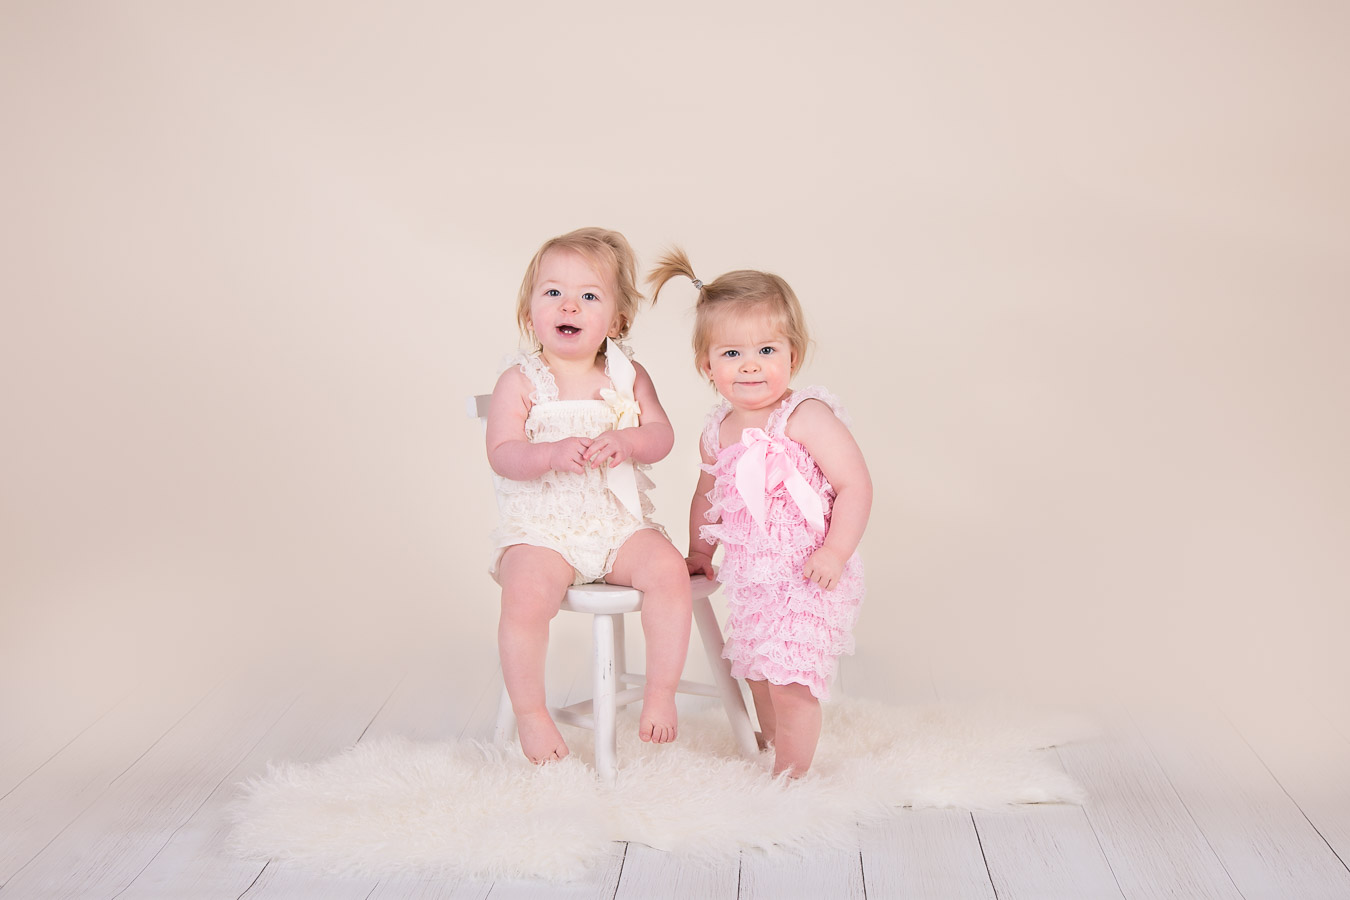 Image of twin baby girls from classic children session from Halifax Family Photographer